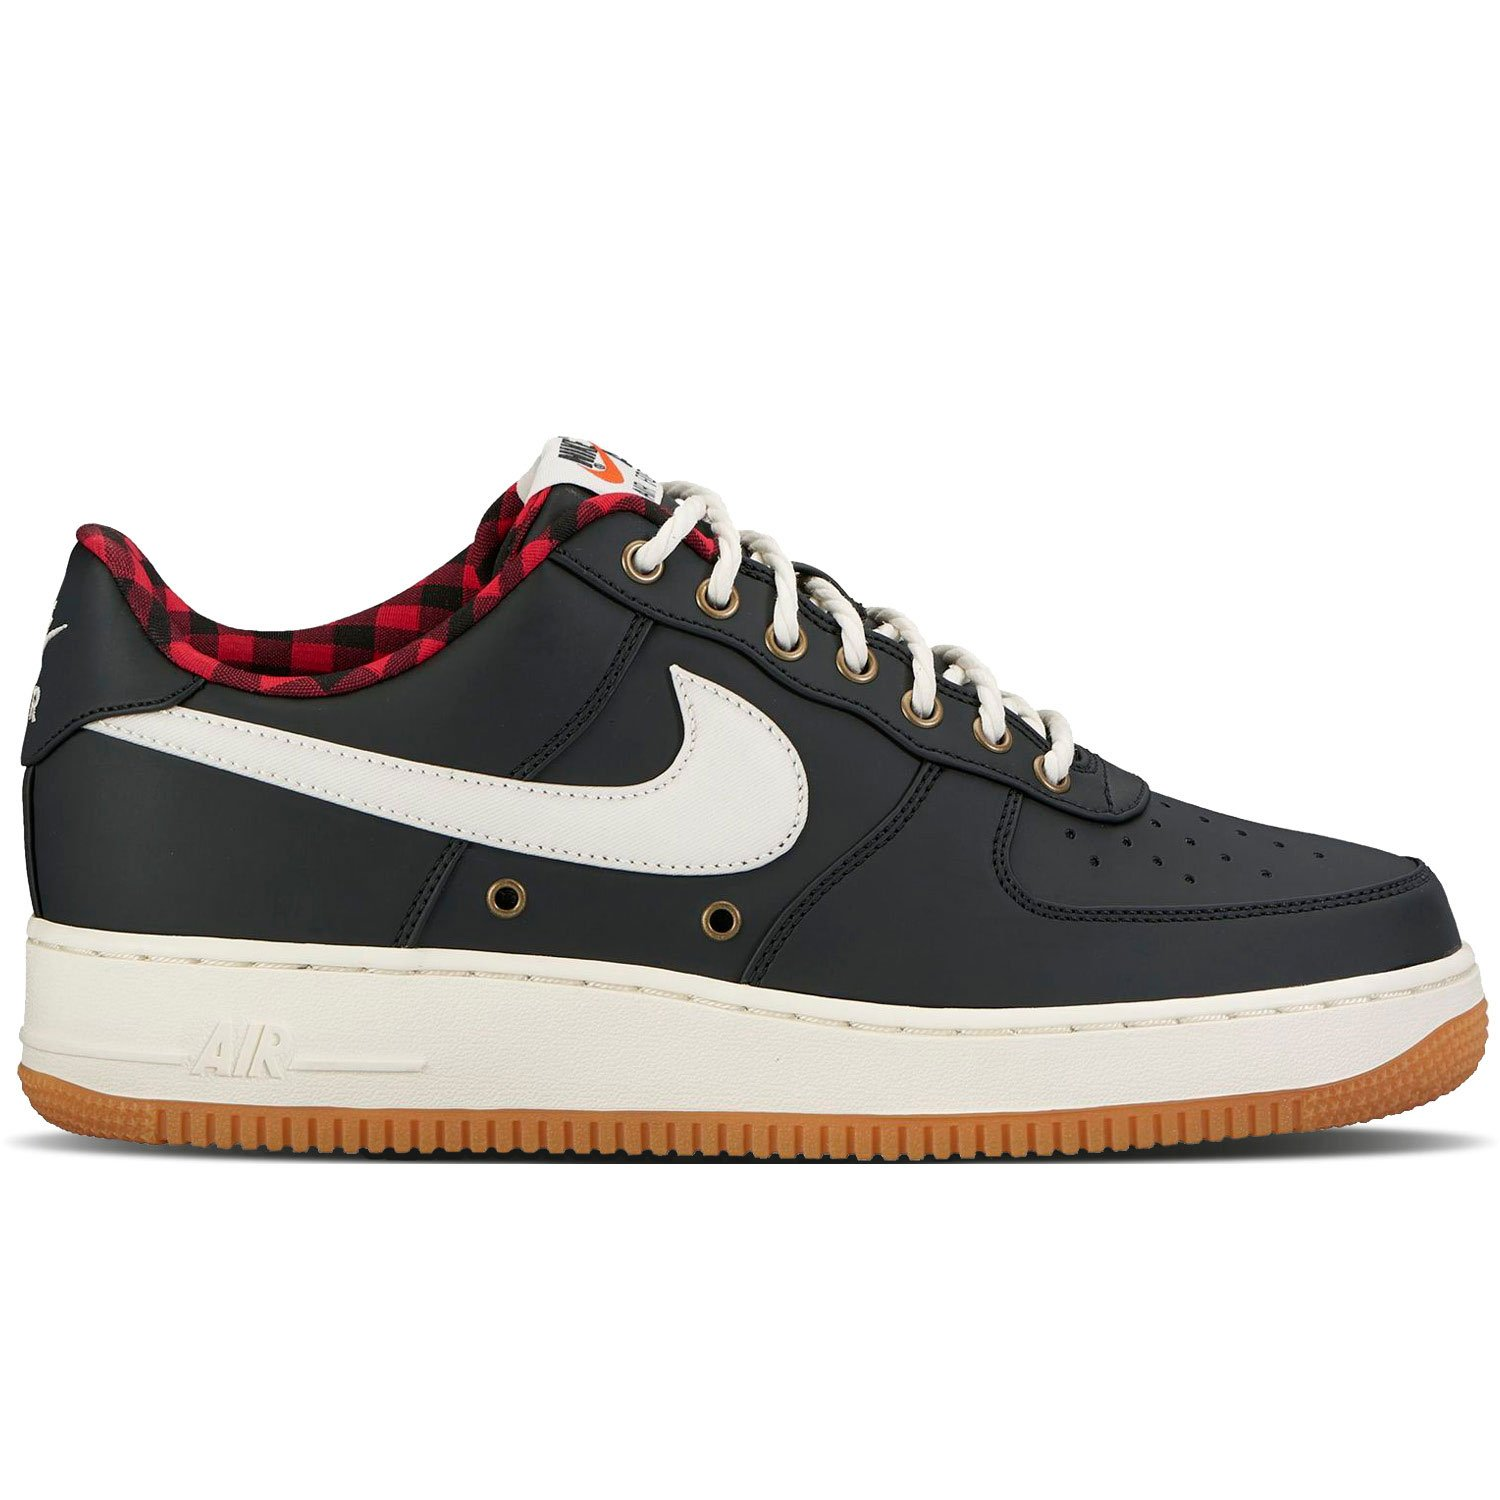 Nike Air Force 1 '07 LV8 Black/Sail 718152 015